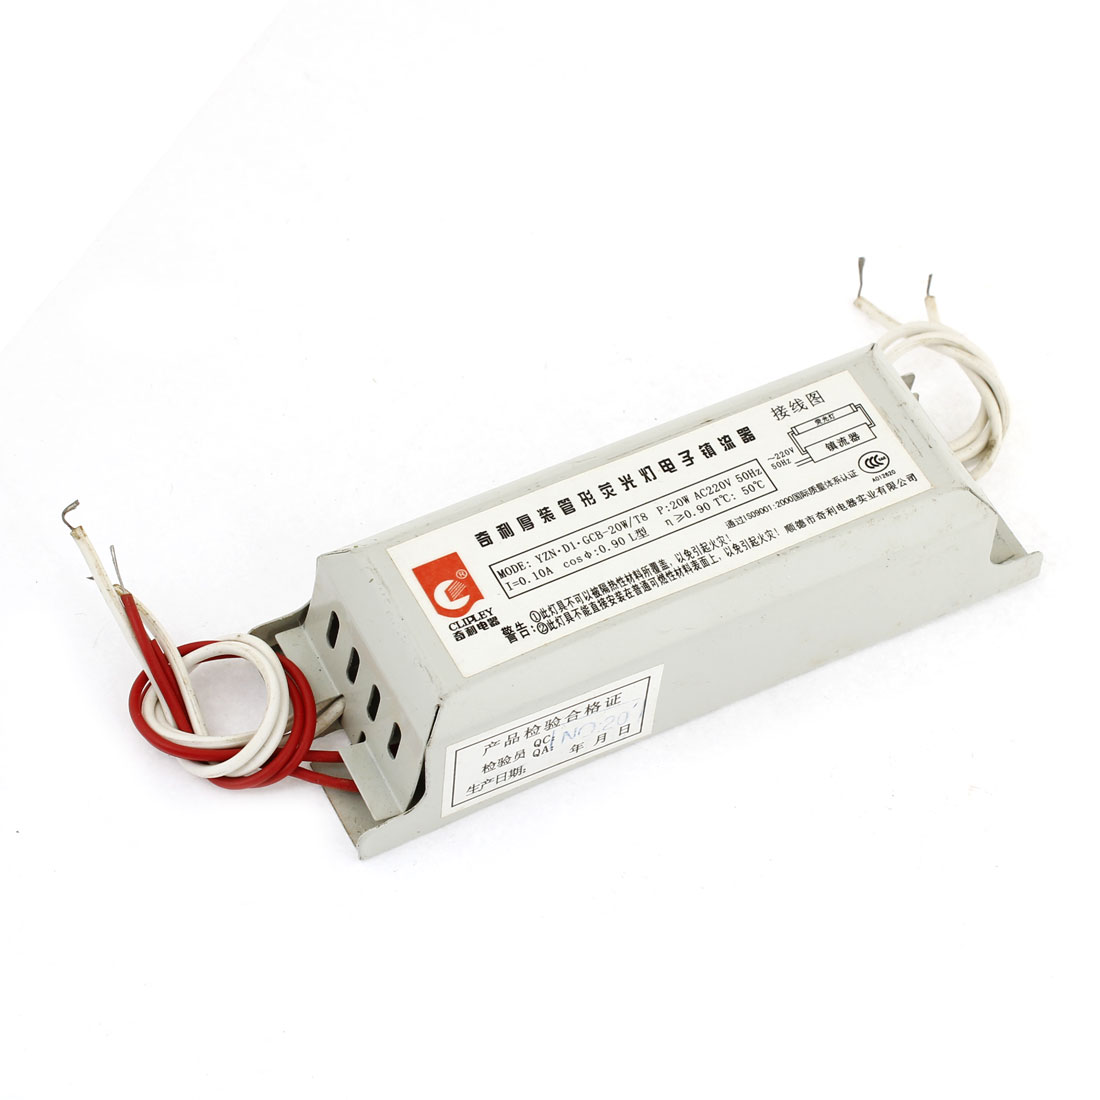 AC 220V 0.1A 20W 50Hz Gray Alloy Shell Fluorescent Light Lamp Ballast